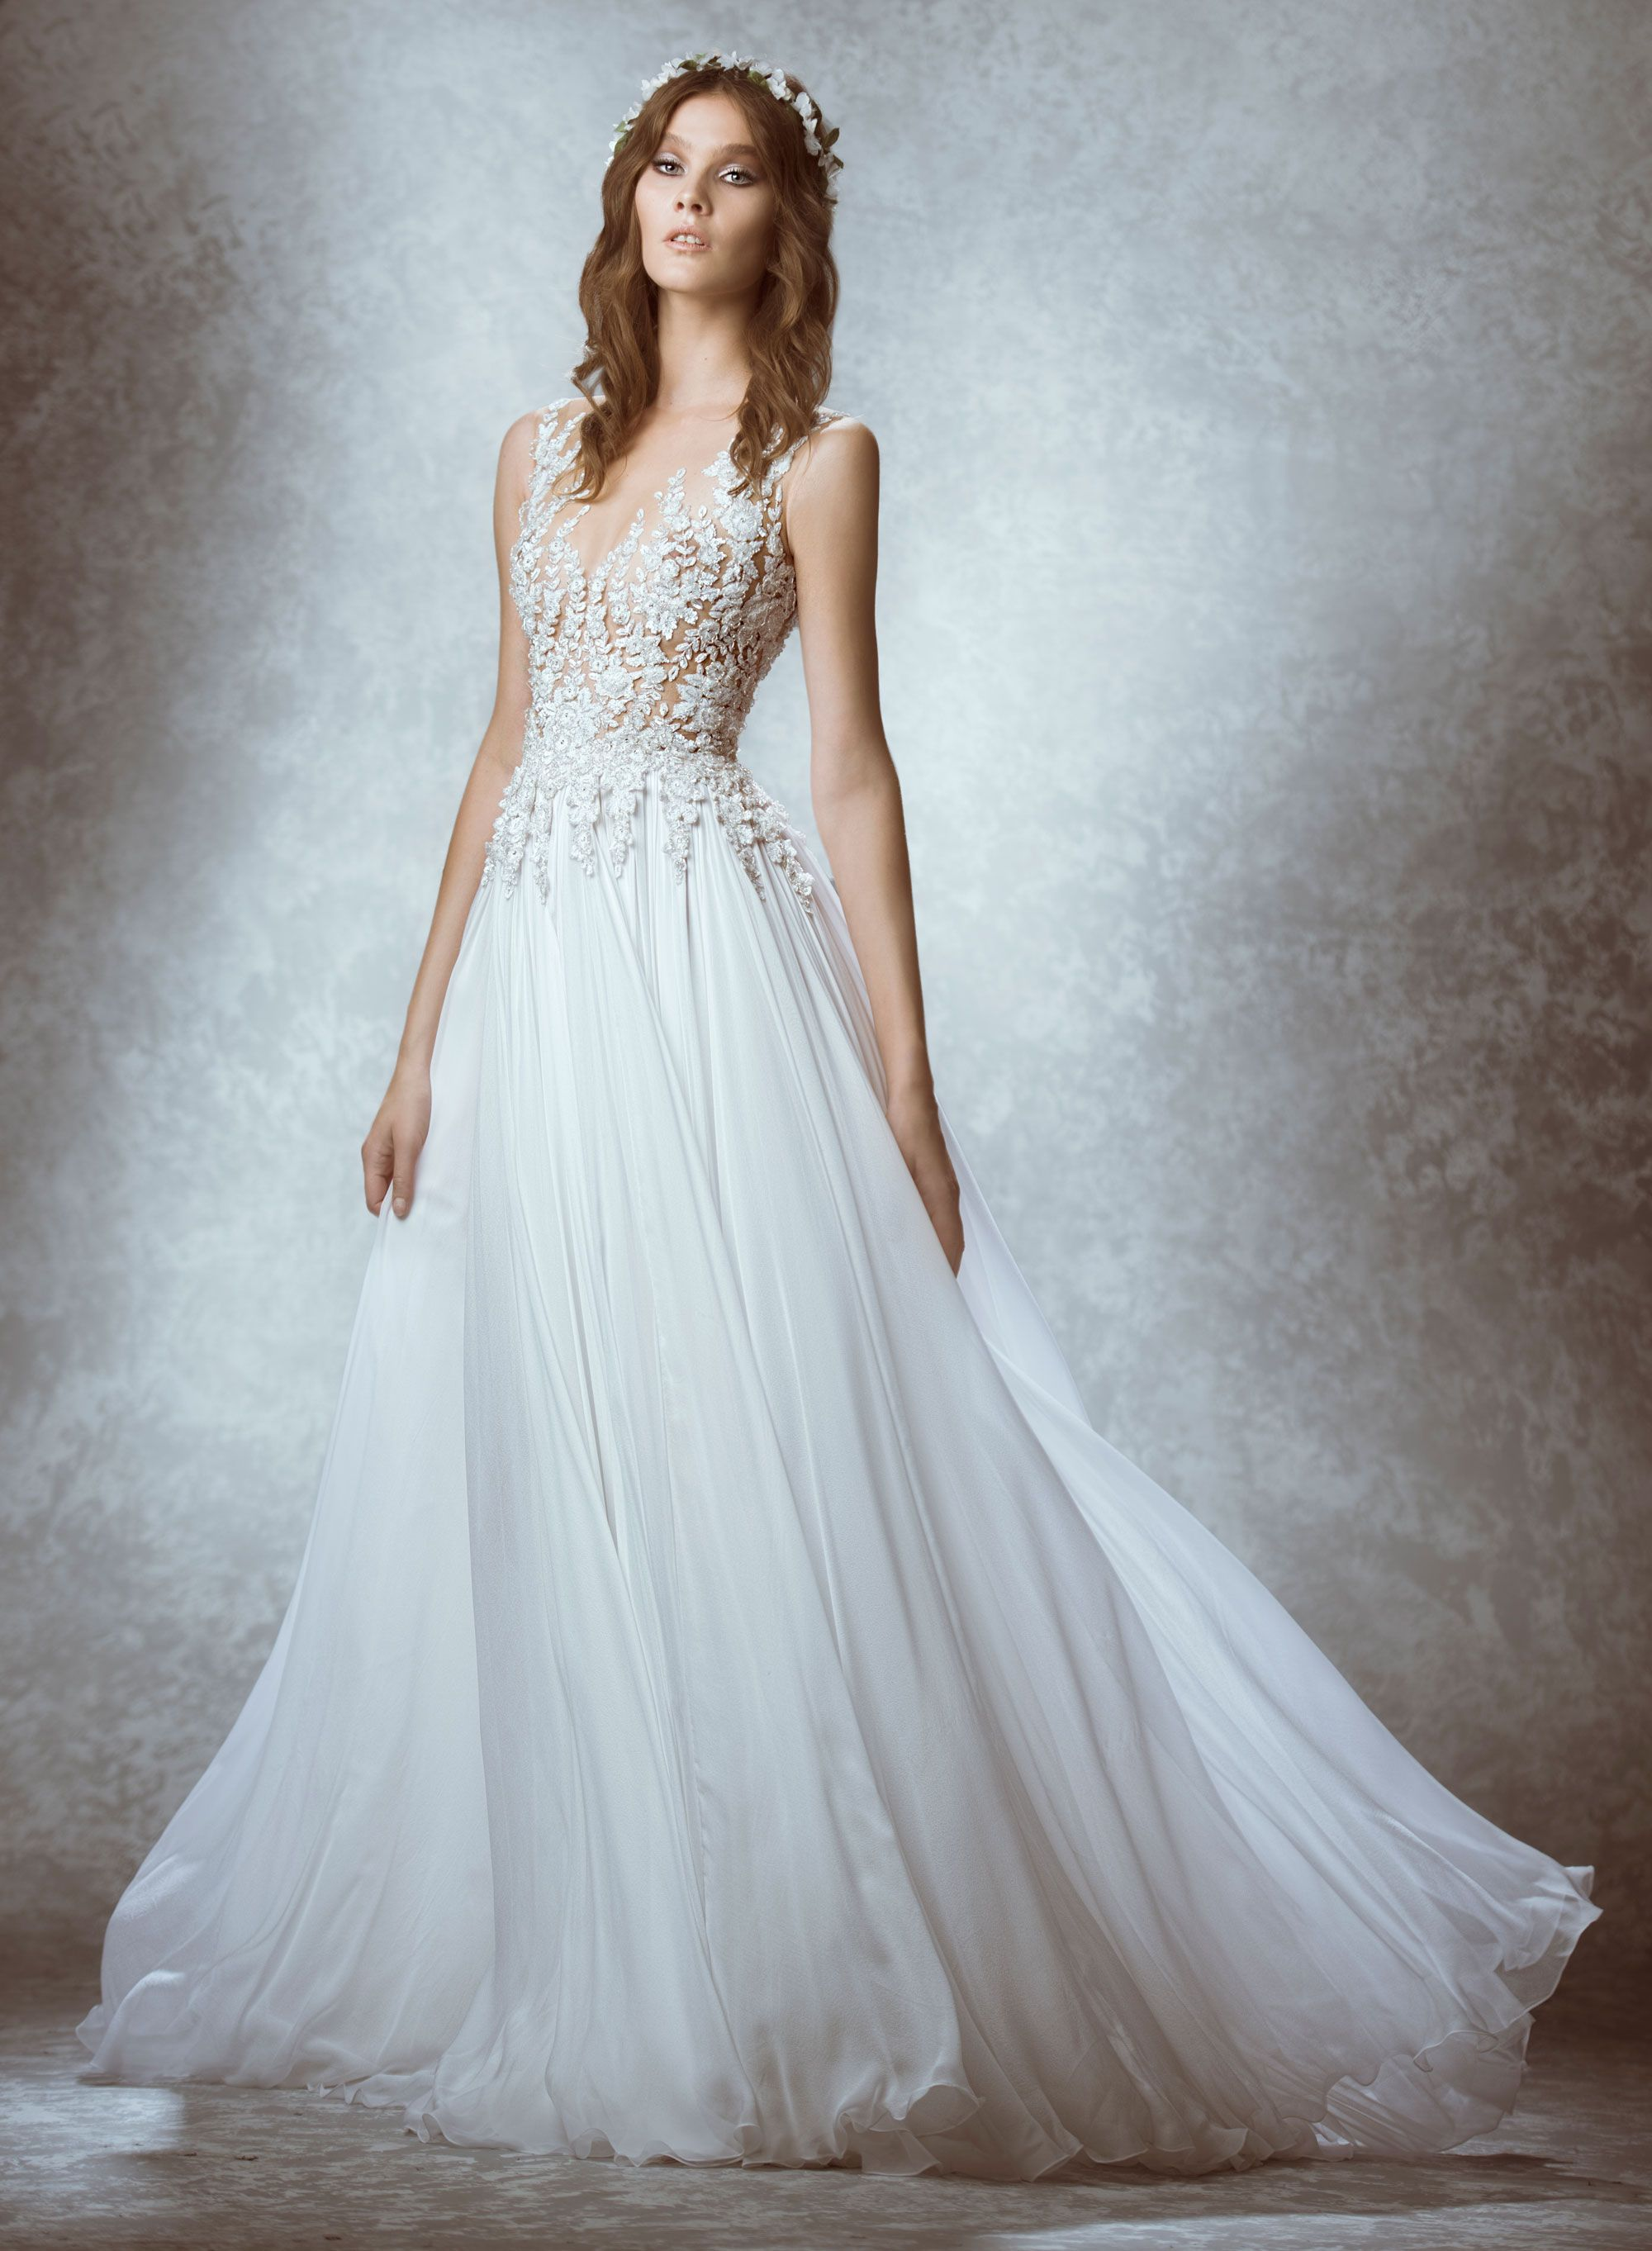 Zuhair Murad Bridal Collection Fall 2015 | WEDDING | Pinterest ...